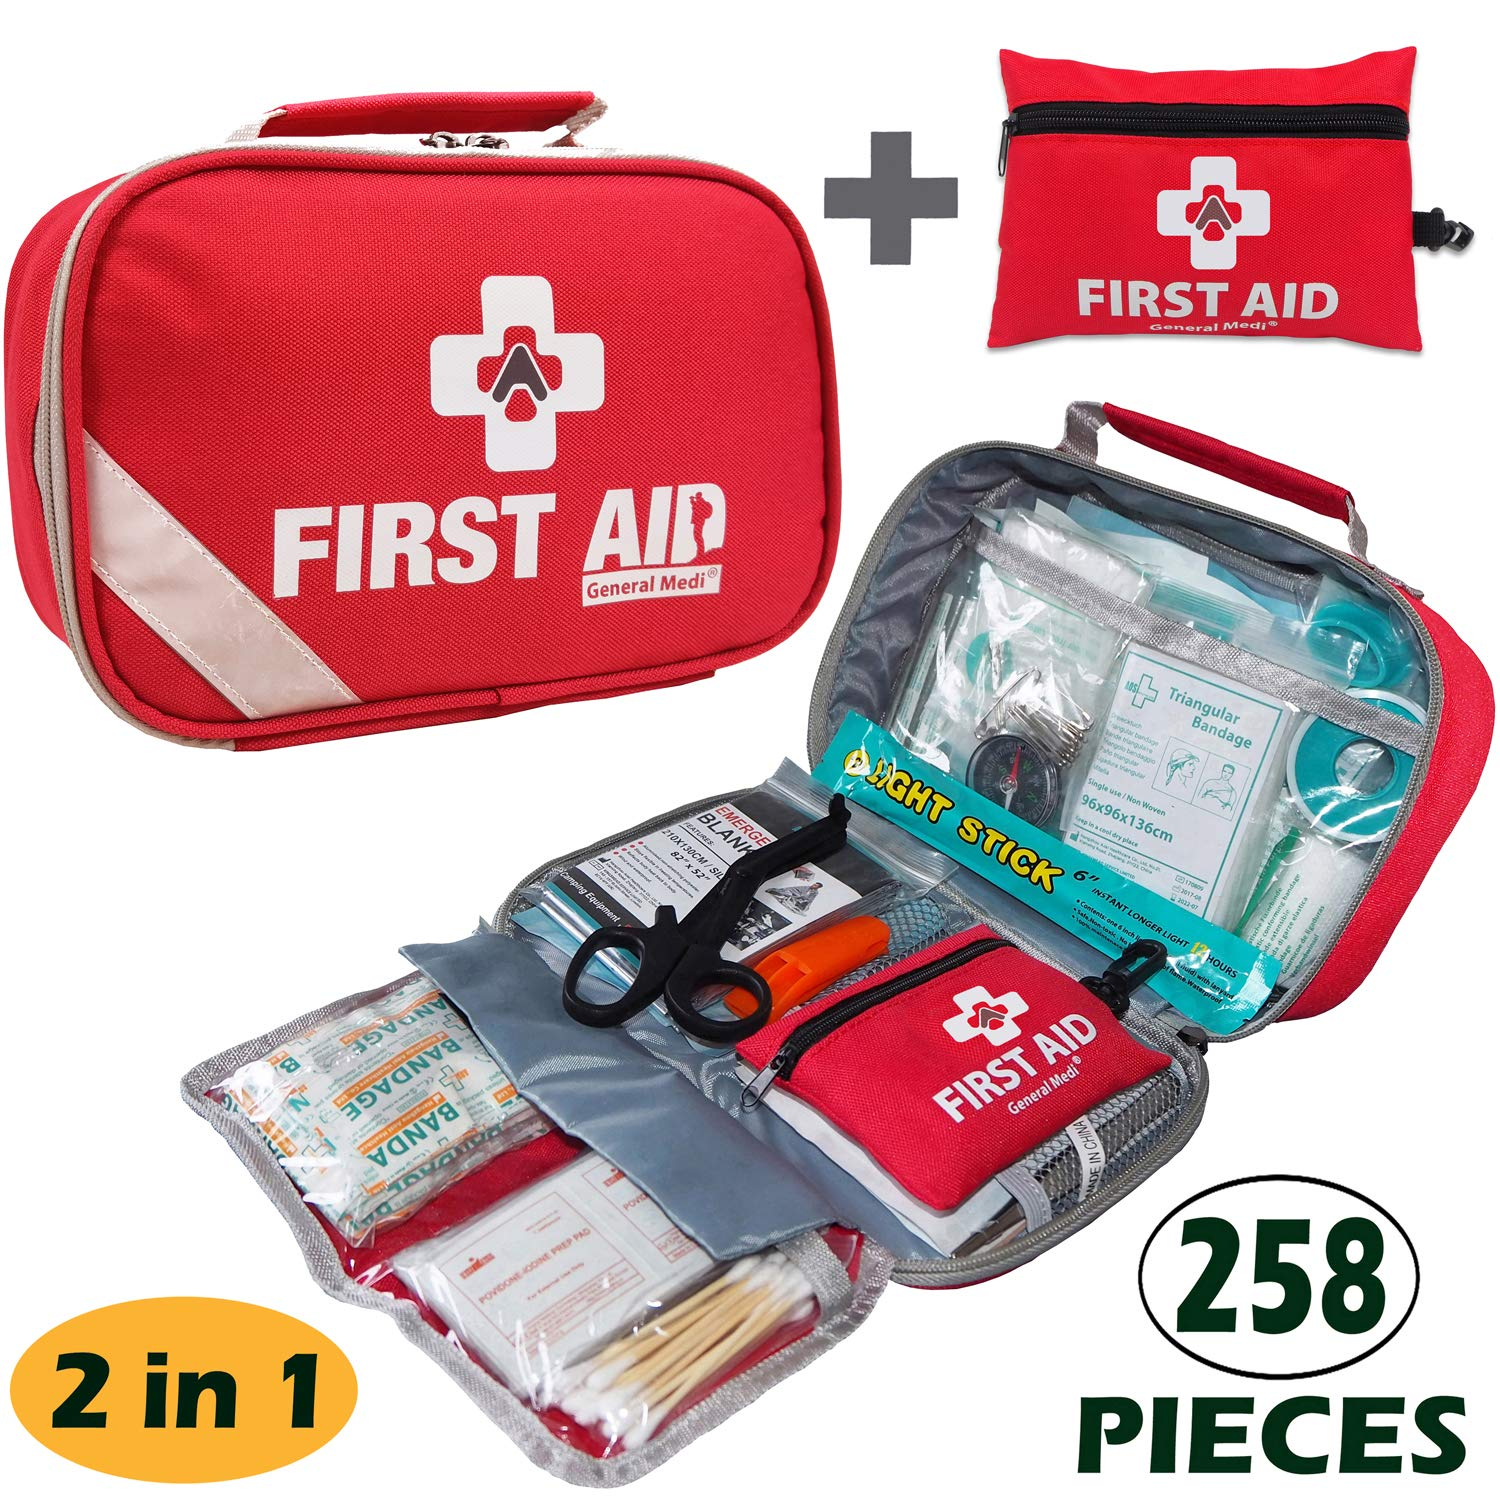 2-in-1 First Aid Kit (215Piece) + Bonus 43Piece Mini First Aid Kit -Includes Eyewash, Ice(Cold) Pack, Moleskin Pad, CPR Face Mask & Emergency Blanket for Travel, Home, Office, Car, Workplace by General Medi